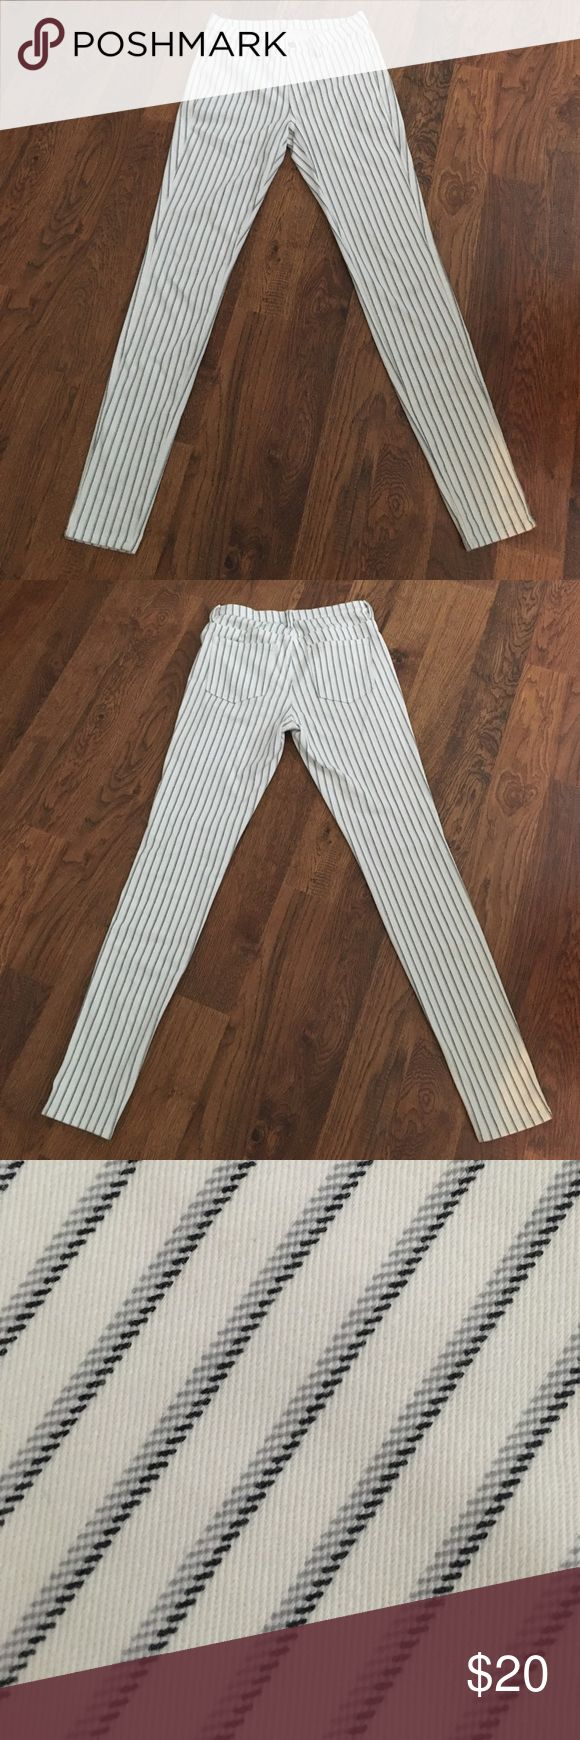 "Uniqlo leggings pants -- white stripe Uniqlo ""leggings pants"" with a gray/black stripe pattern, size S. Only worn a few times, so passing them along to someone else! Questions & offers welcome. Uniqlo Pants Leggings"